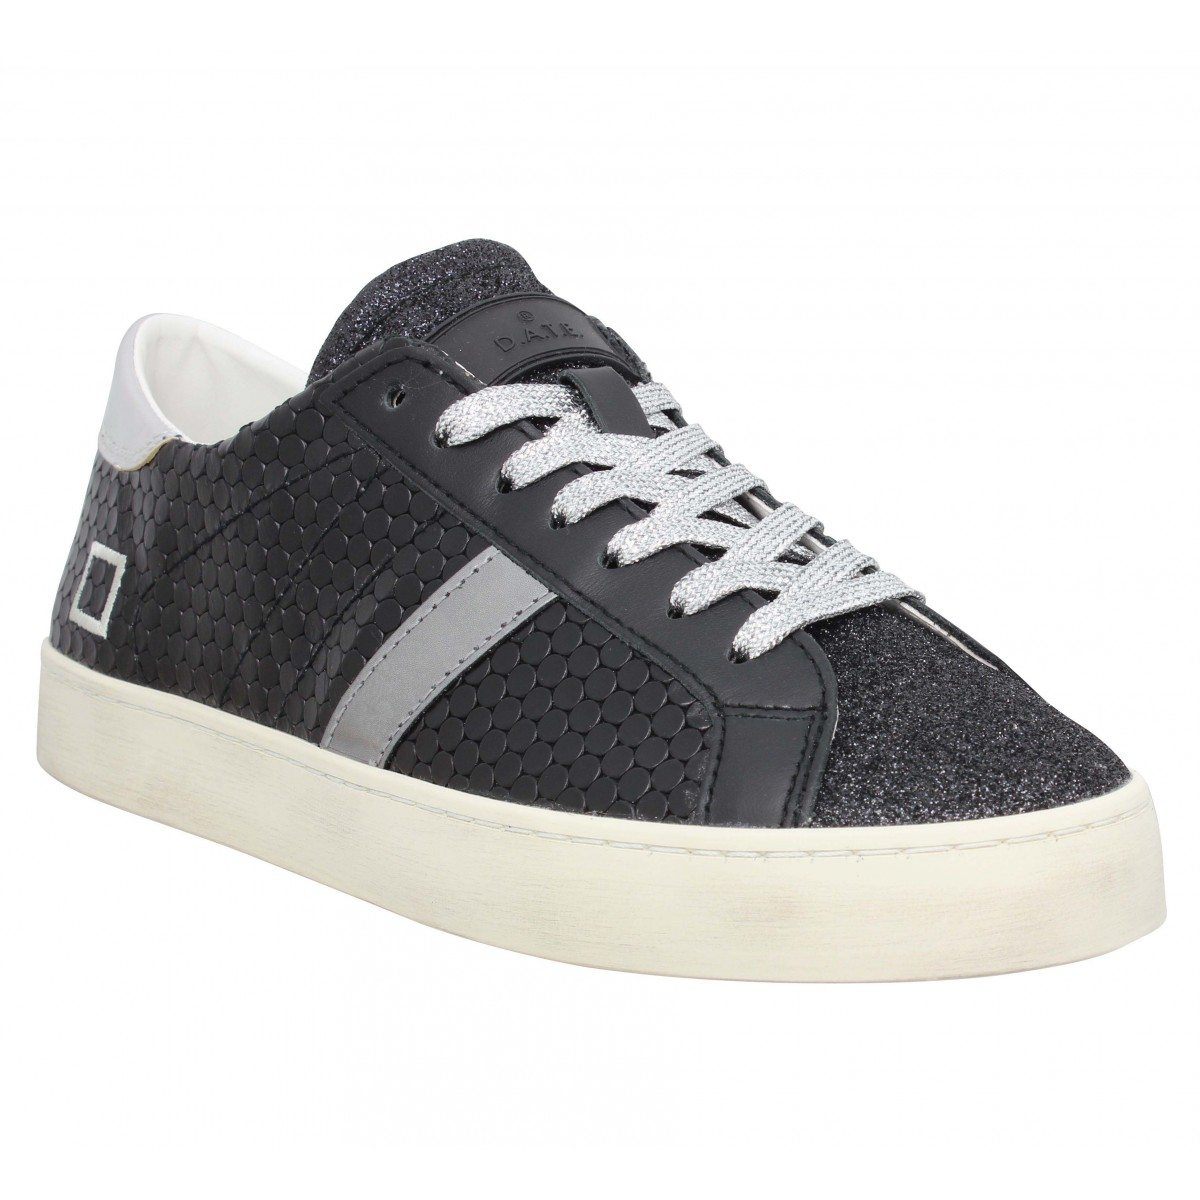 Baskets DATE SNEAKERS Hill Low pong Femme Noir Argent